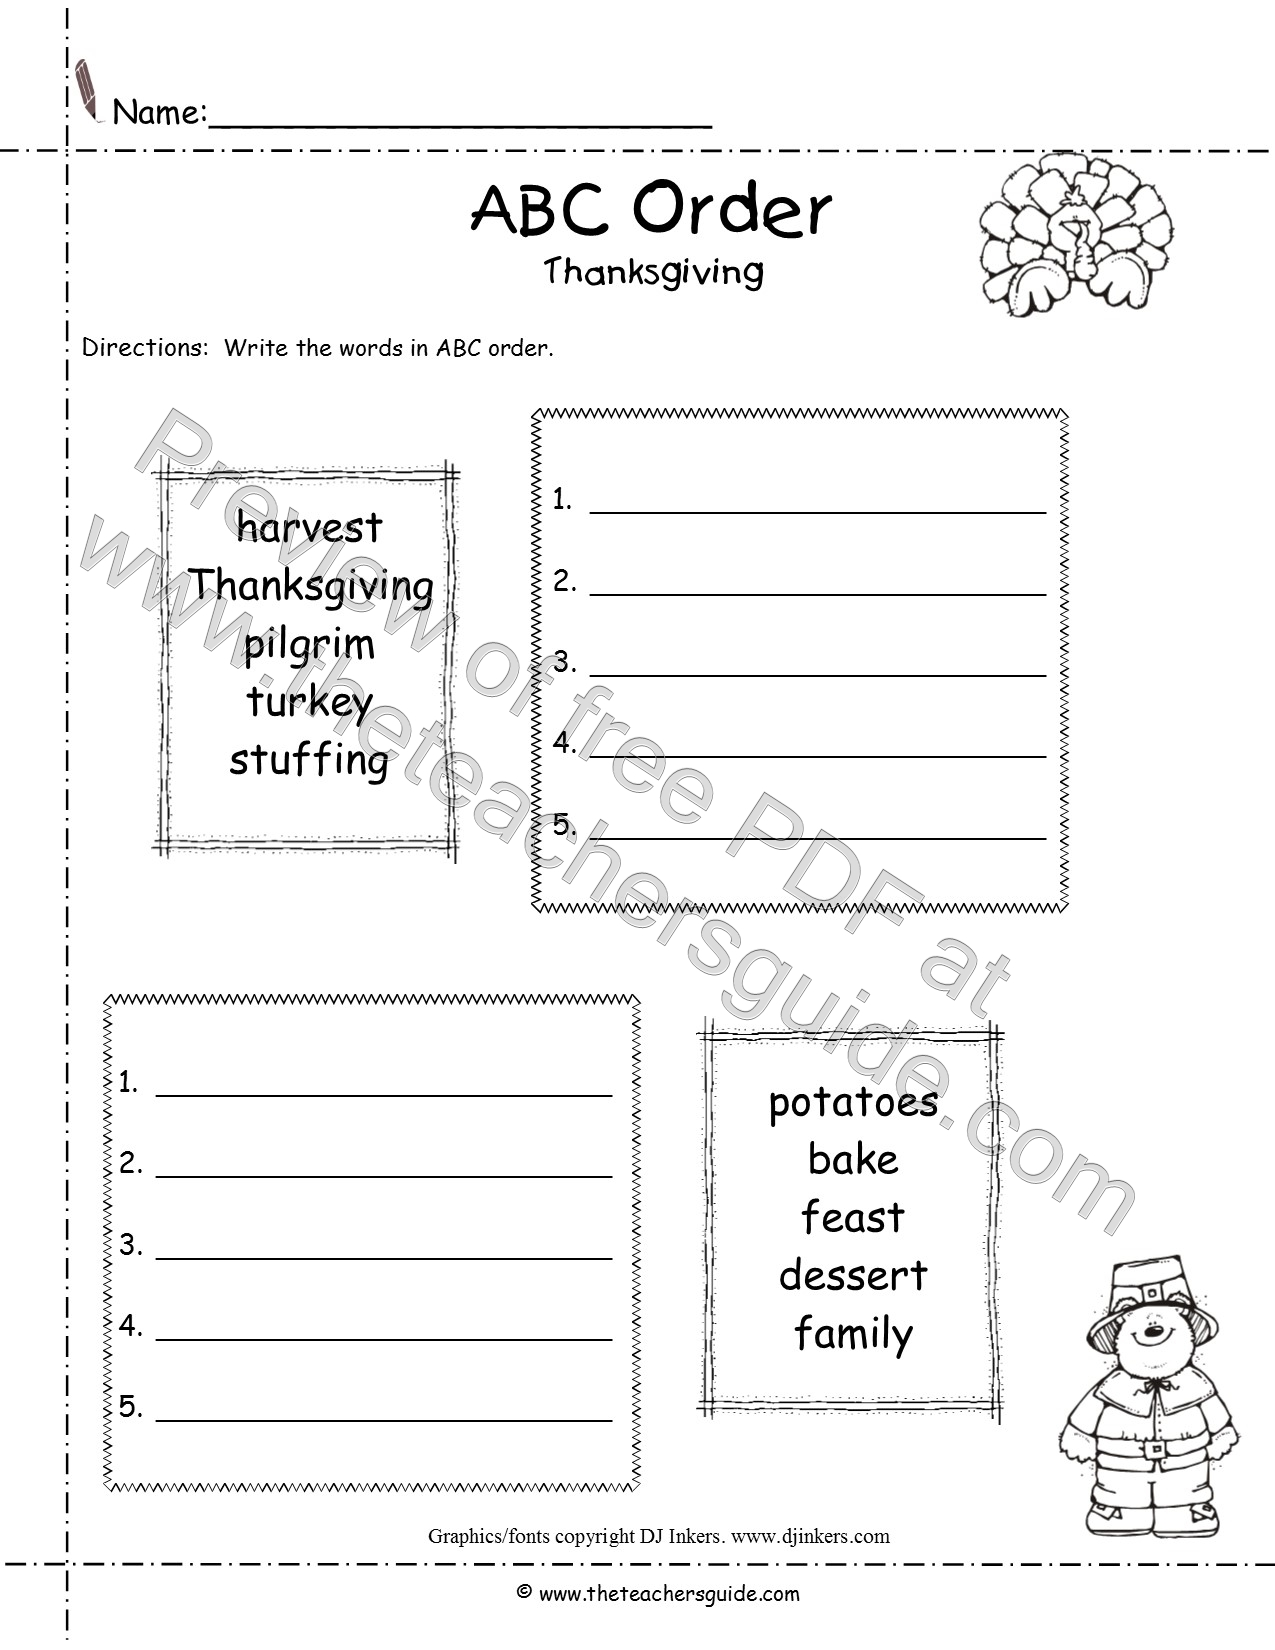 Blank Abc Order Template Worksheets